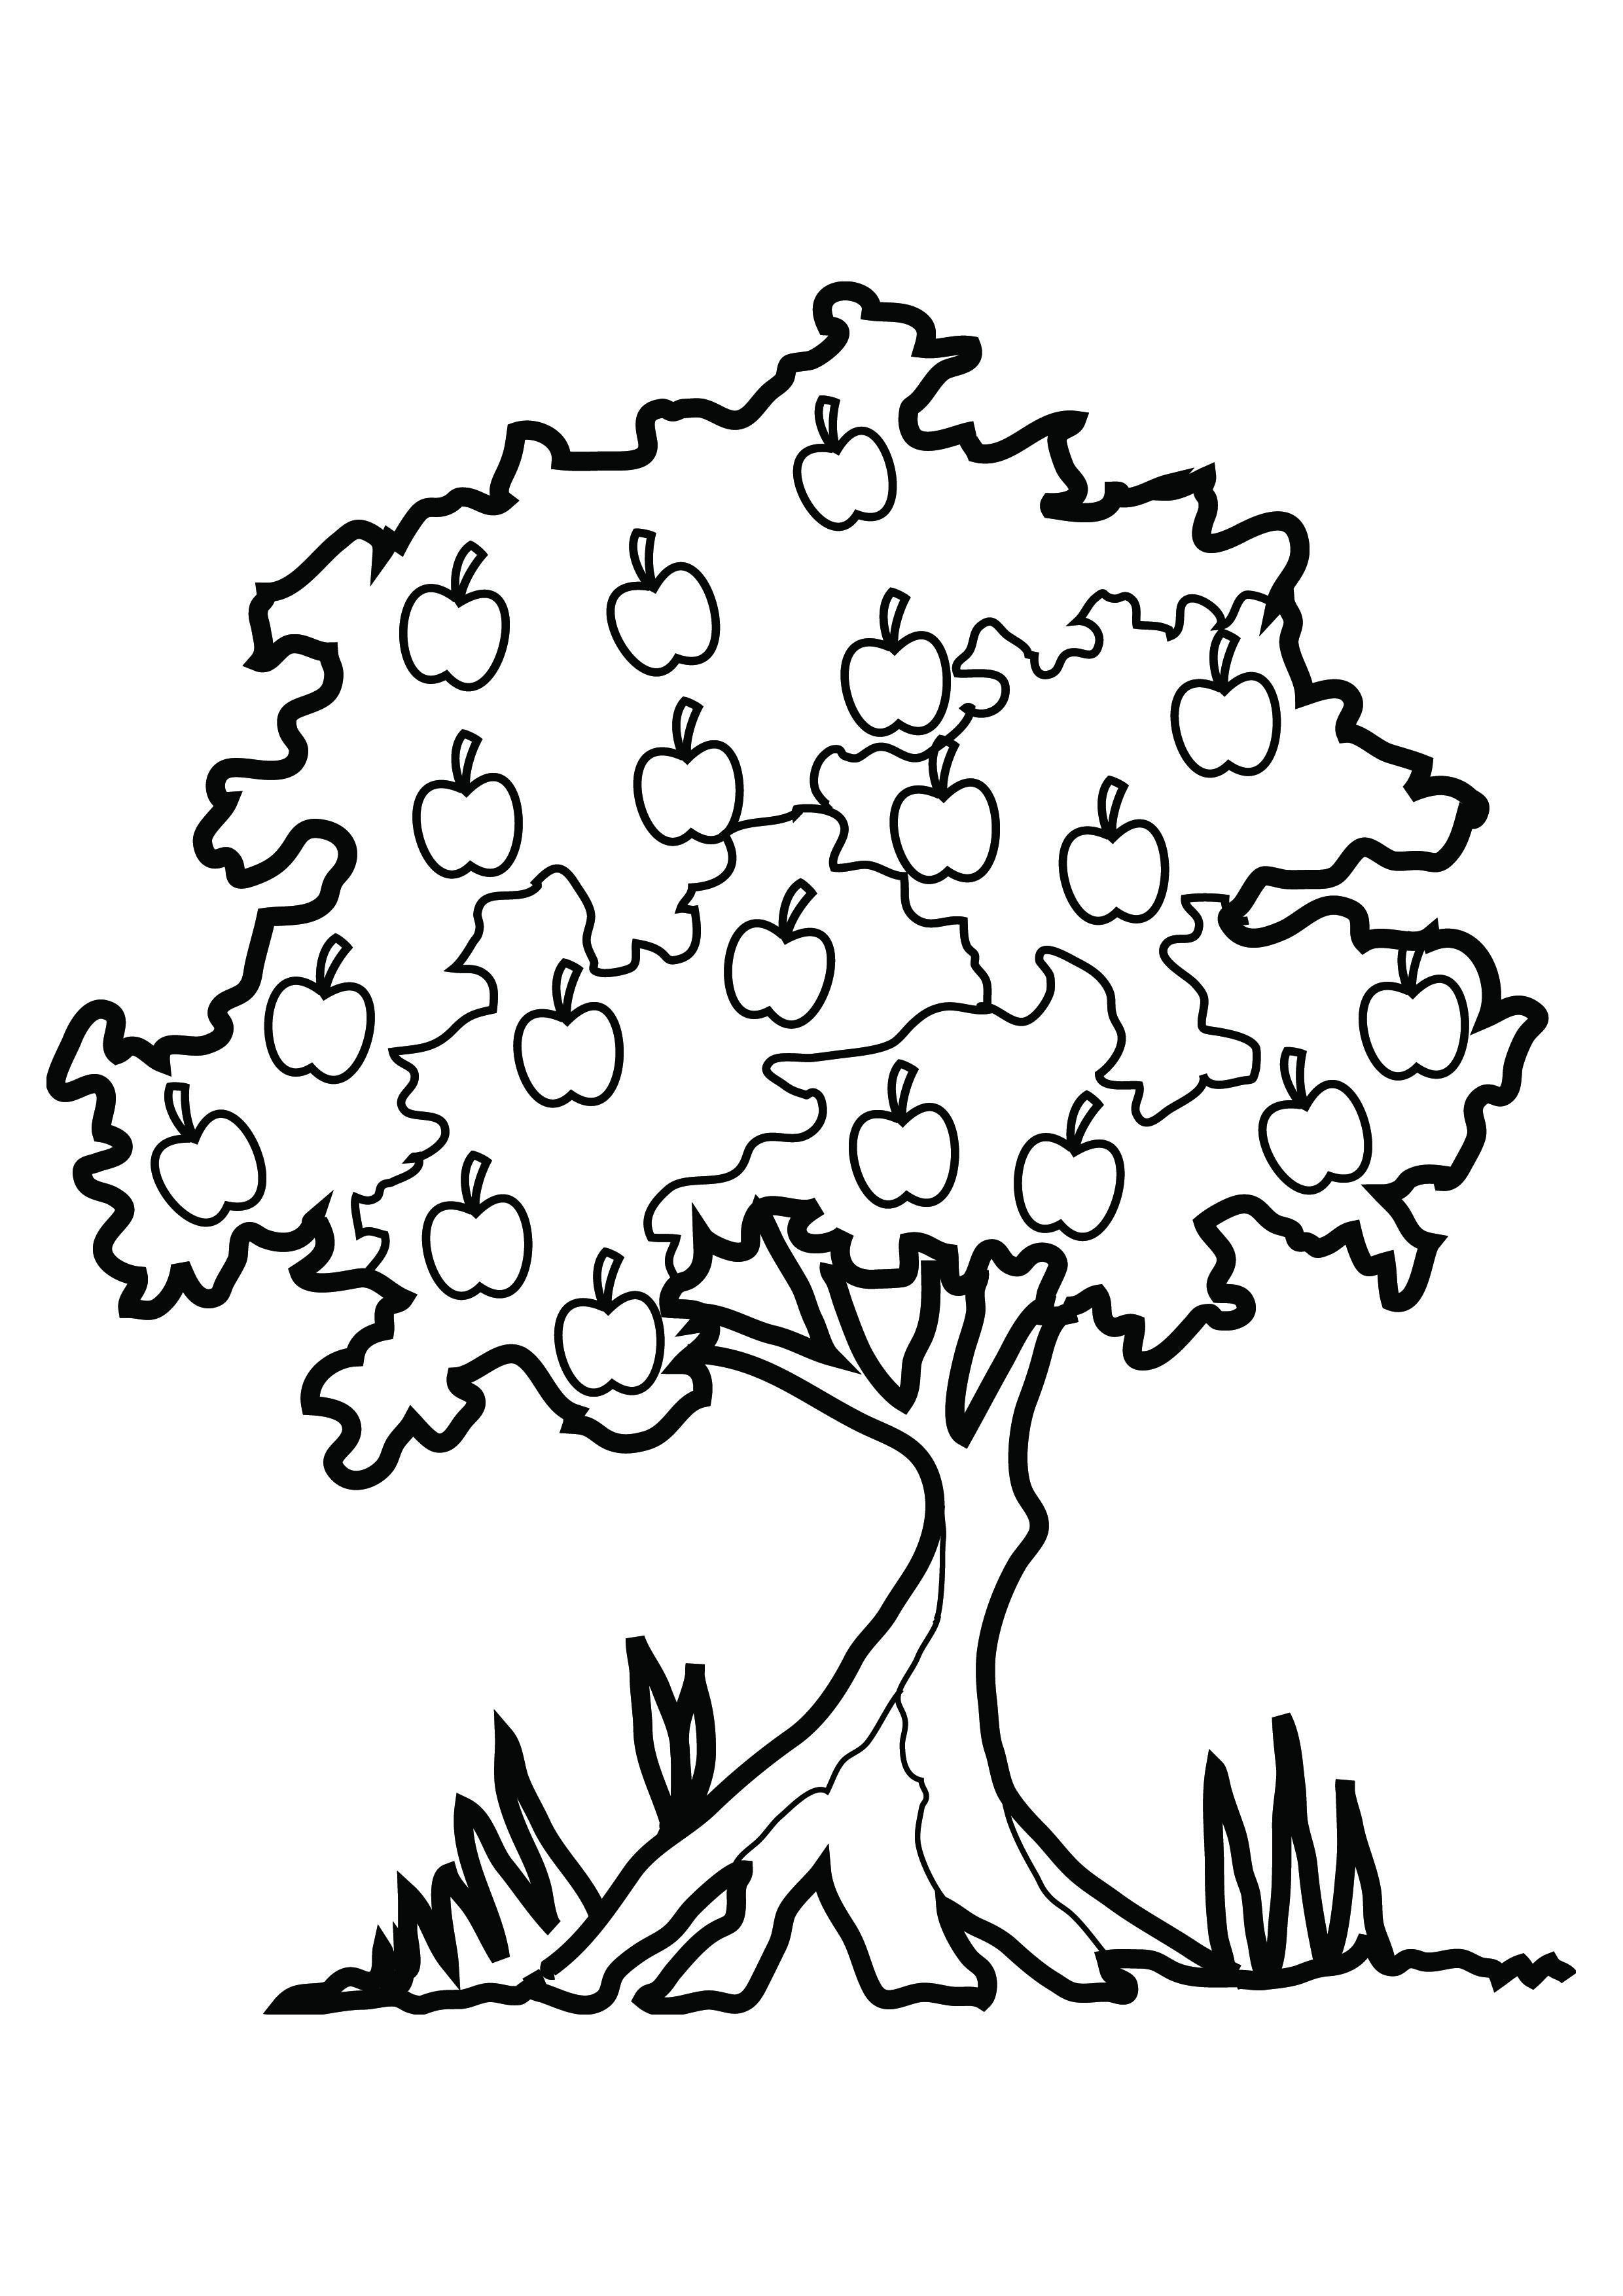 Tree Stump Coloring Page Pdf on a budget